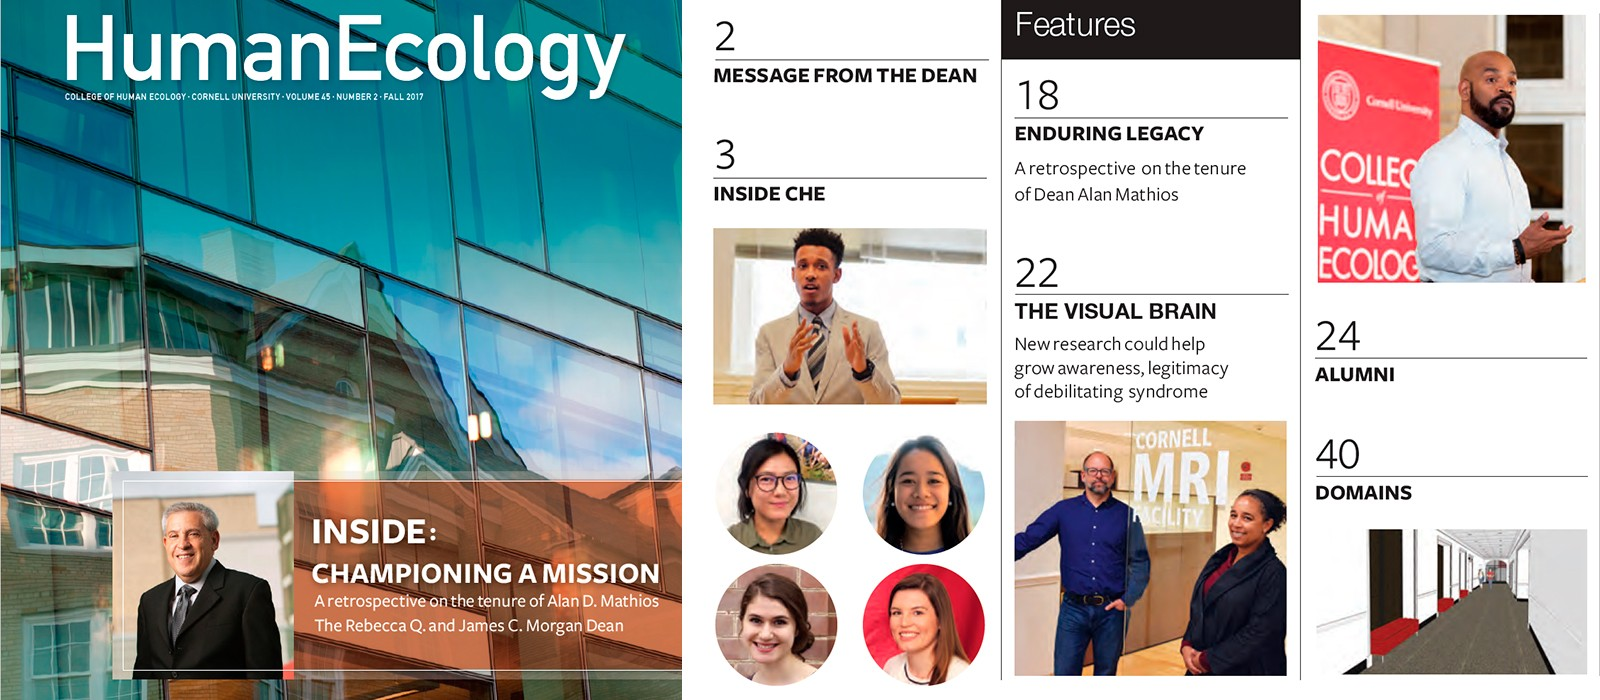 Human Ecology magazine cover and table of contents